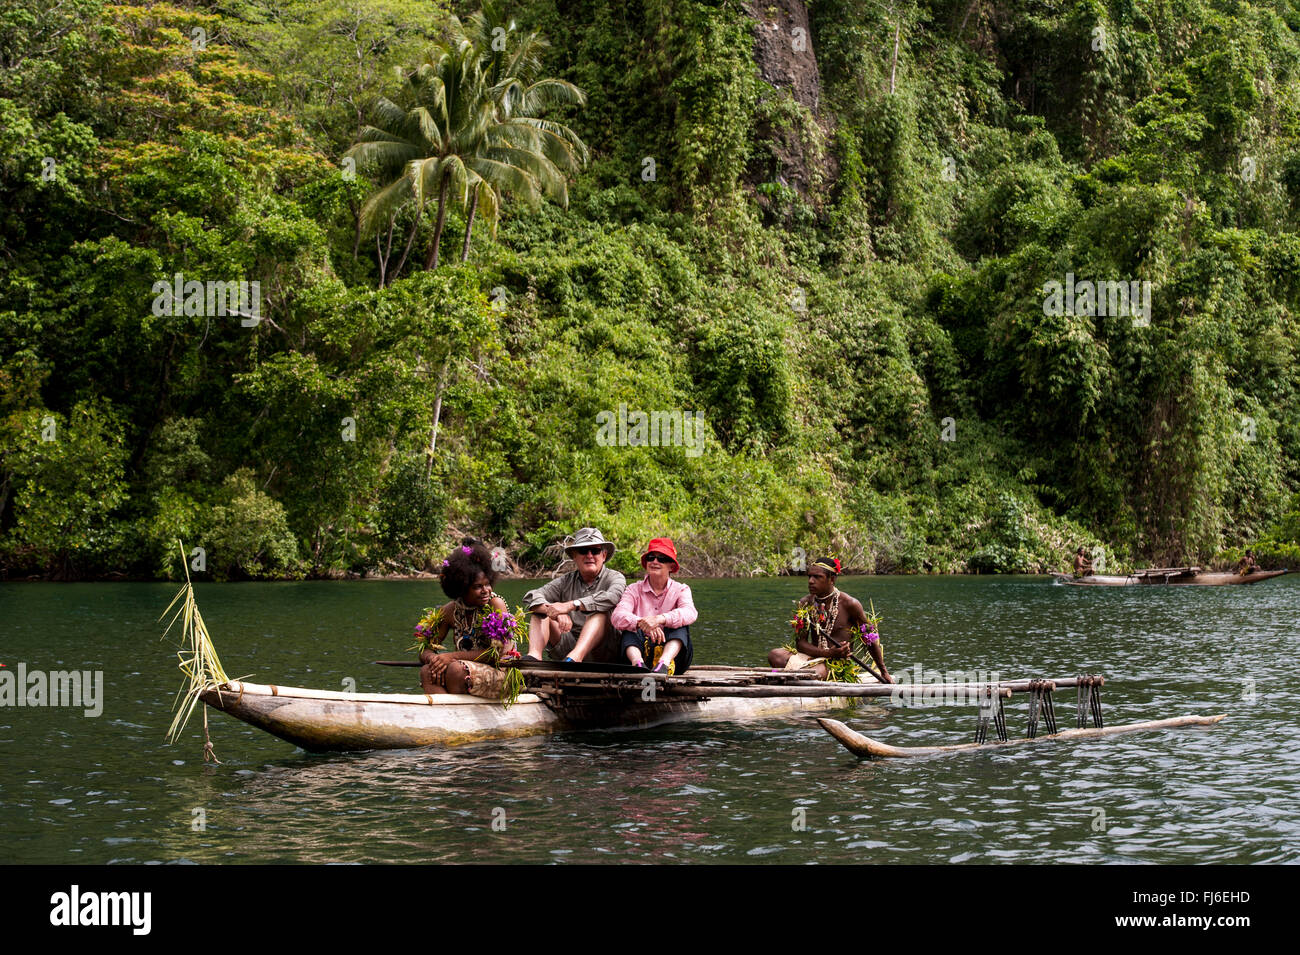 Tourists on traditional canoe Maclaren Harbour, Papua New Guinea - Stock Image